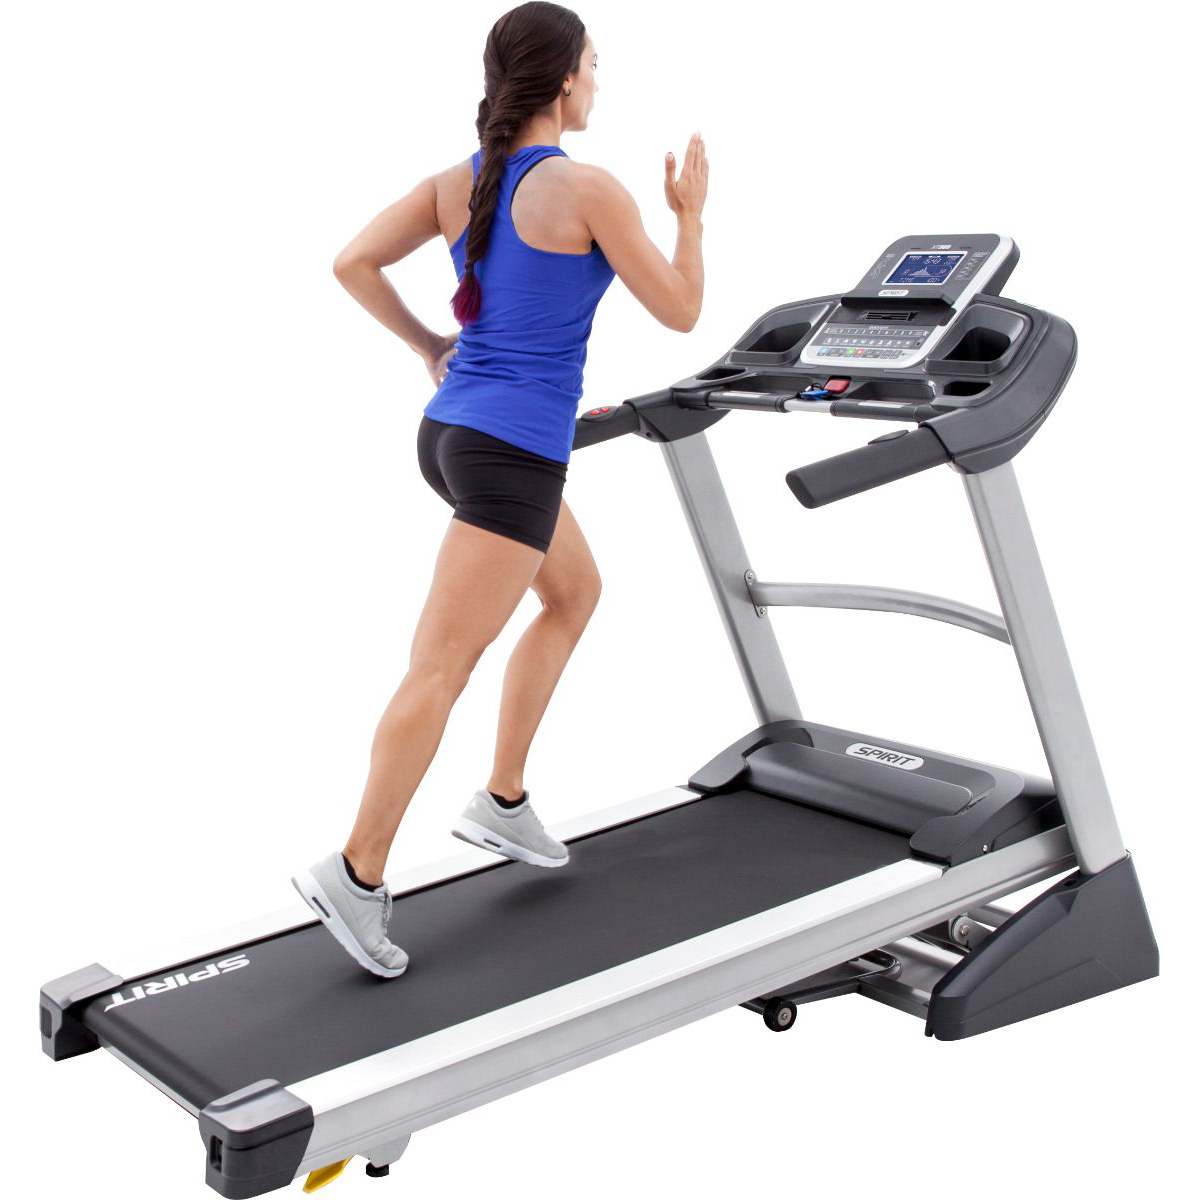 Side view of the Spirit Fitness XT385 treadmill in inclined position with a female model exercising wearing a blue tank top and black shorts